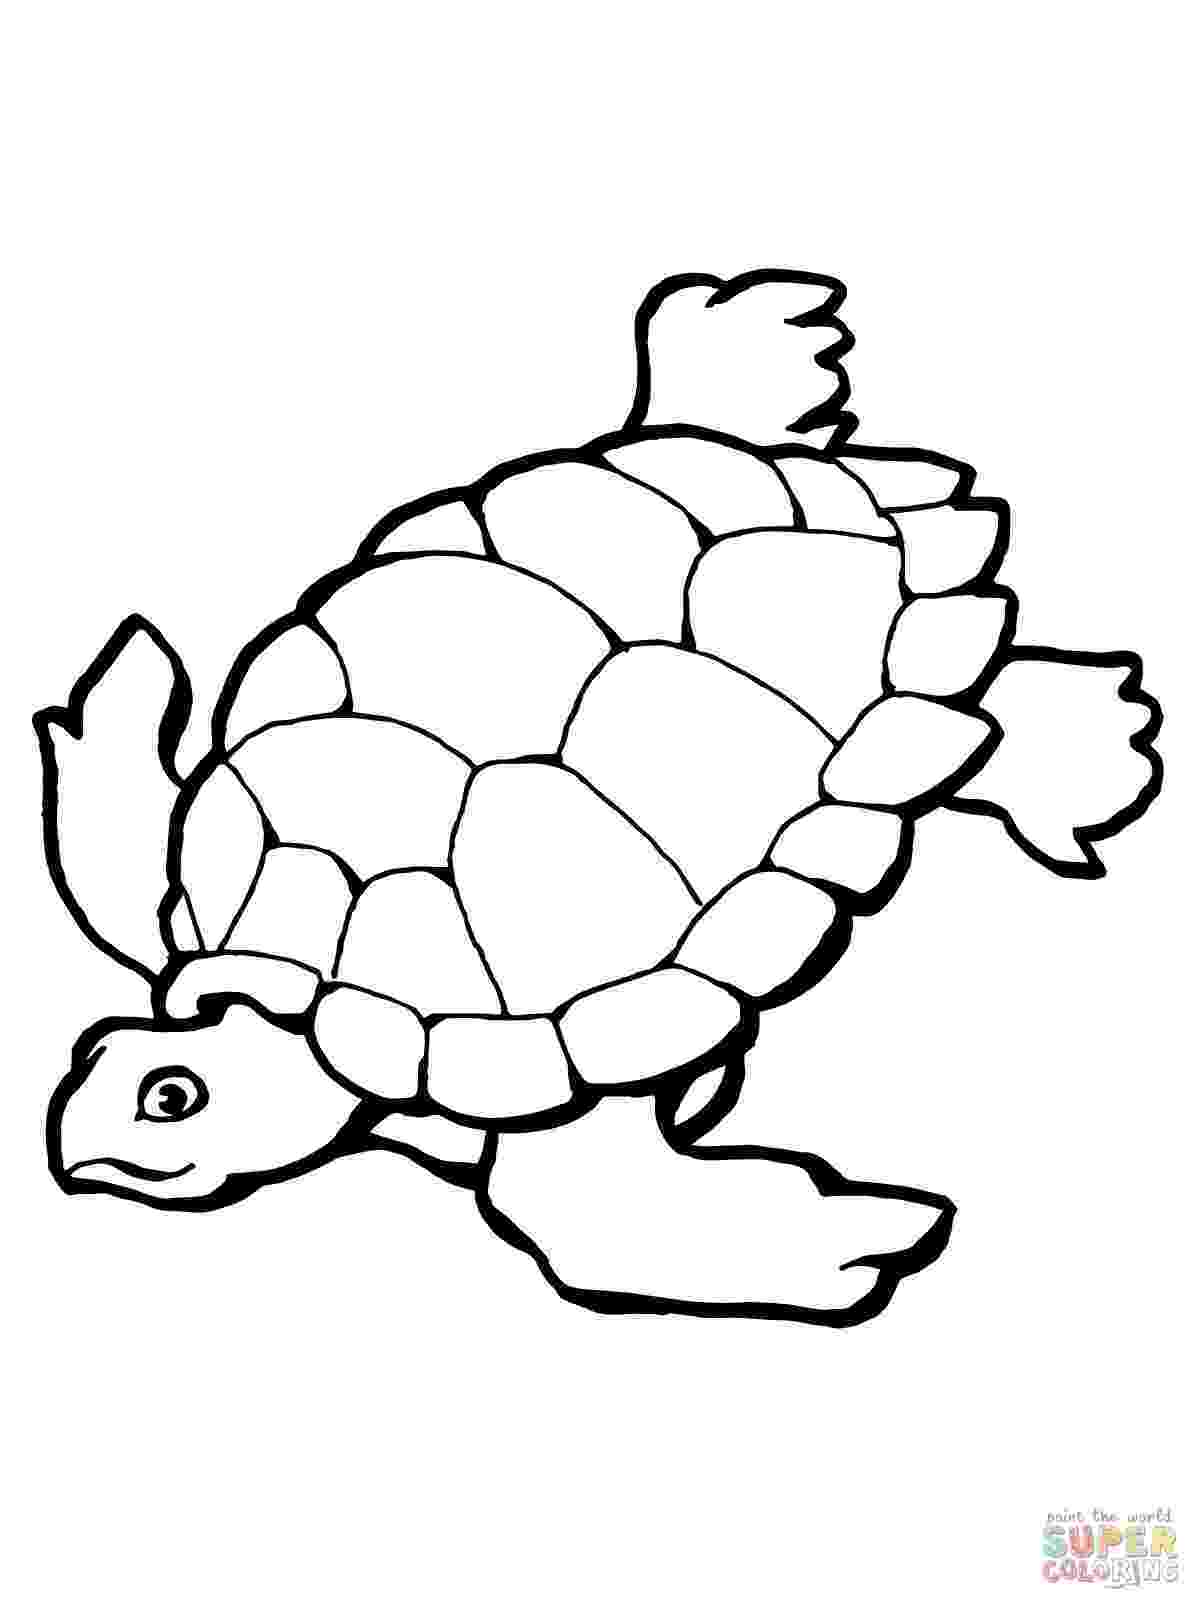 coloring pages of sea turtles printable sea turtle coloring pages for kids cool2bkids coloring turtles pages of sea